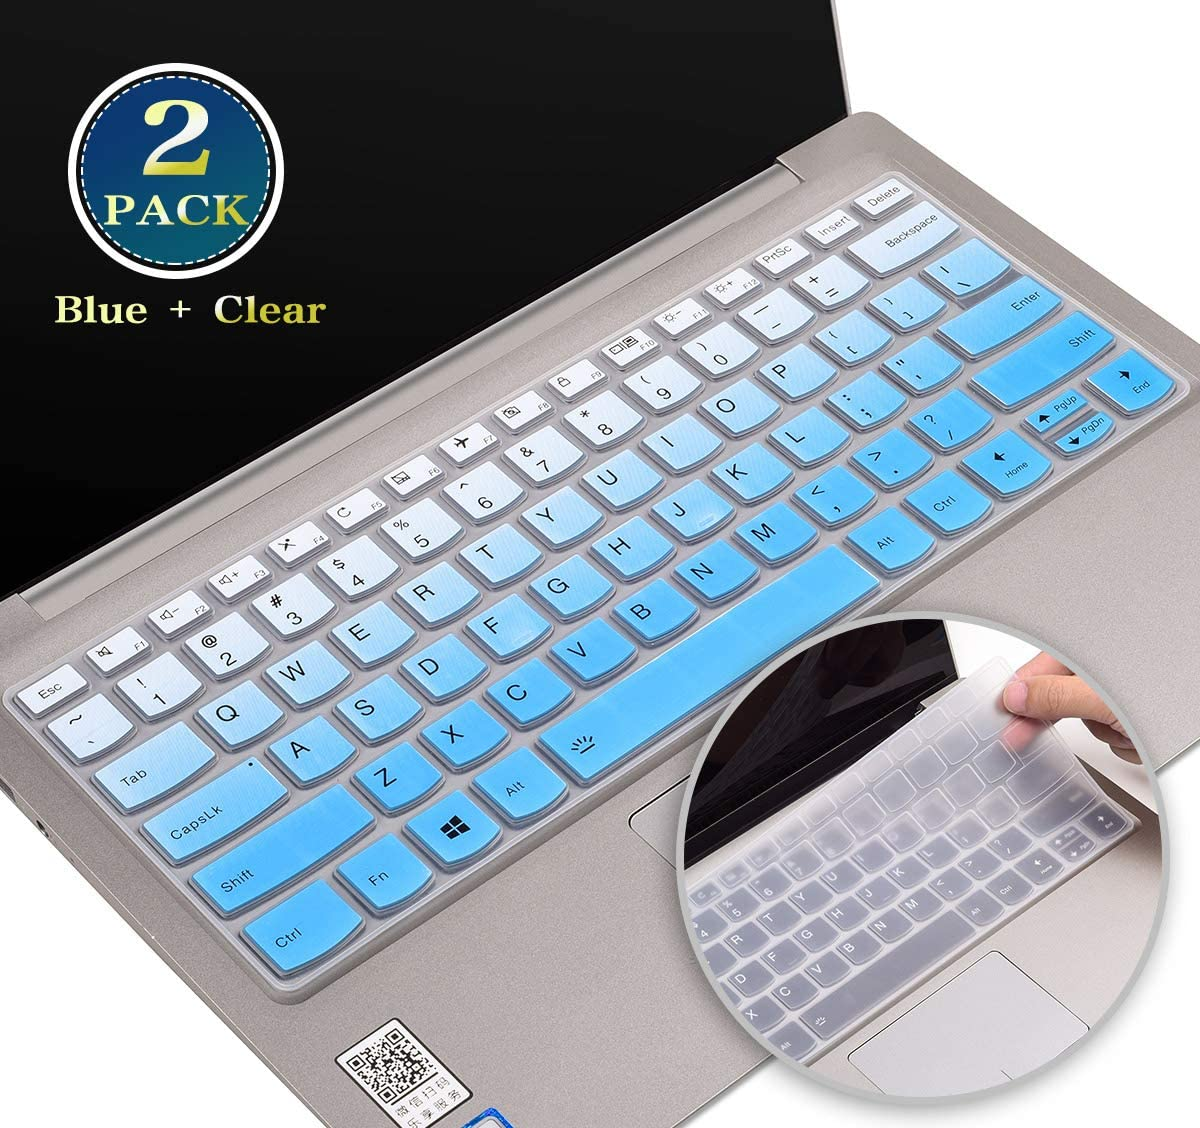 "for Lenovo Keyboard Cover Fit Lenovo Yoga 720 720s 730 13.3, Lenovo Yoga 730 15.6, Lenovo Yoga C940 C740 C930 13.9"", Lenovo Flex 15/Flex 14,Lenovo Ideapad 720s 13 Skin Protector(Blue+Clear)"